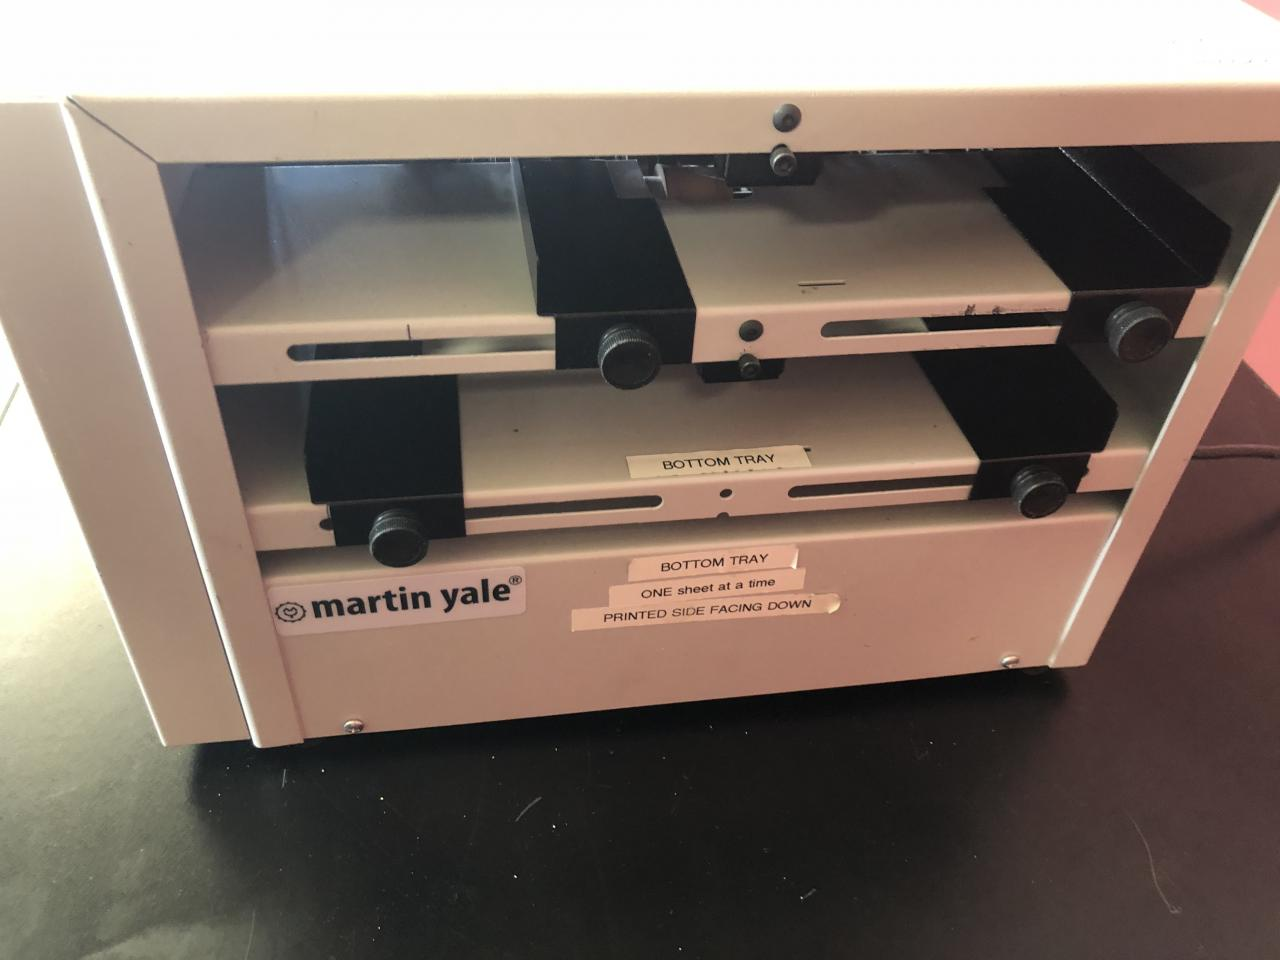 Lot #26: Martin Yale BCS212 Business Card Slitter - Click for Video ...